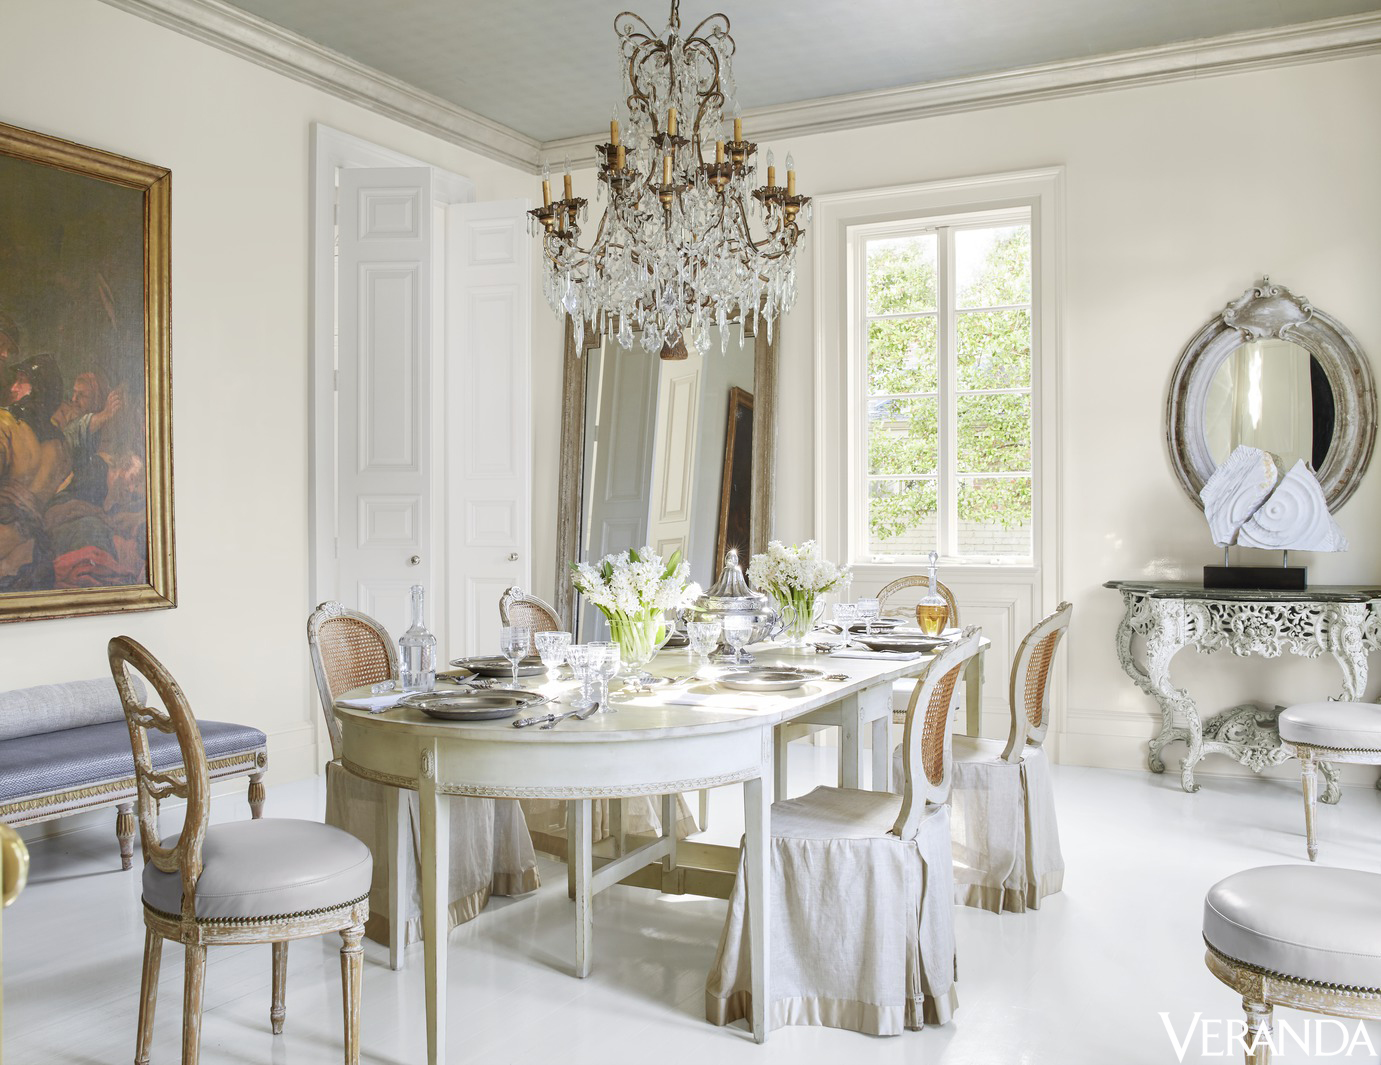 Most Everything Had Just Been Moved From Room To Room. When Veranda Did  Their Feature On The Dining Room Of Tarau0027s House, It Looked Like This: